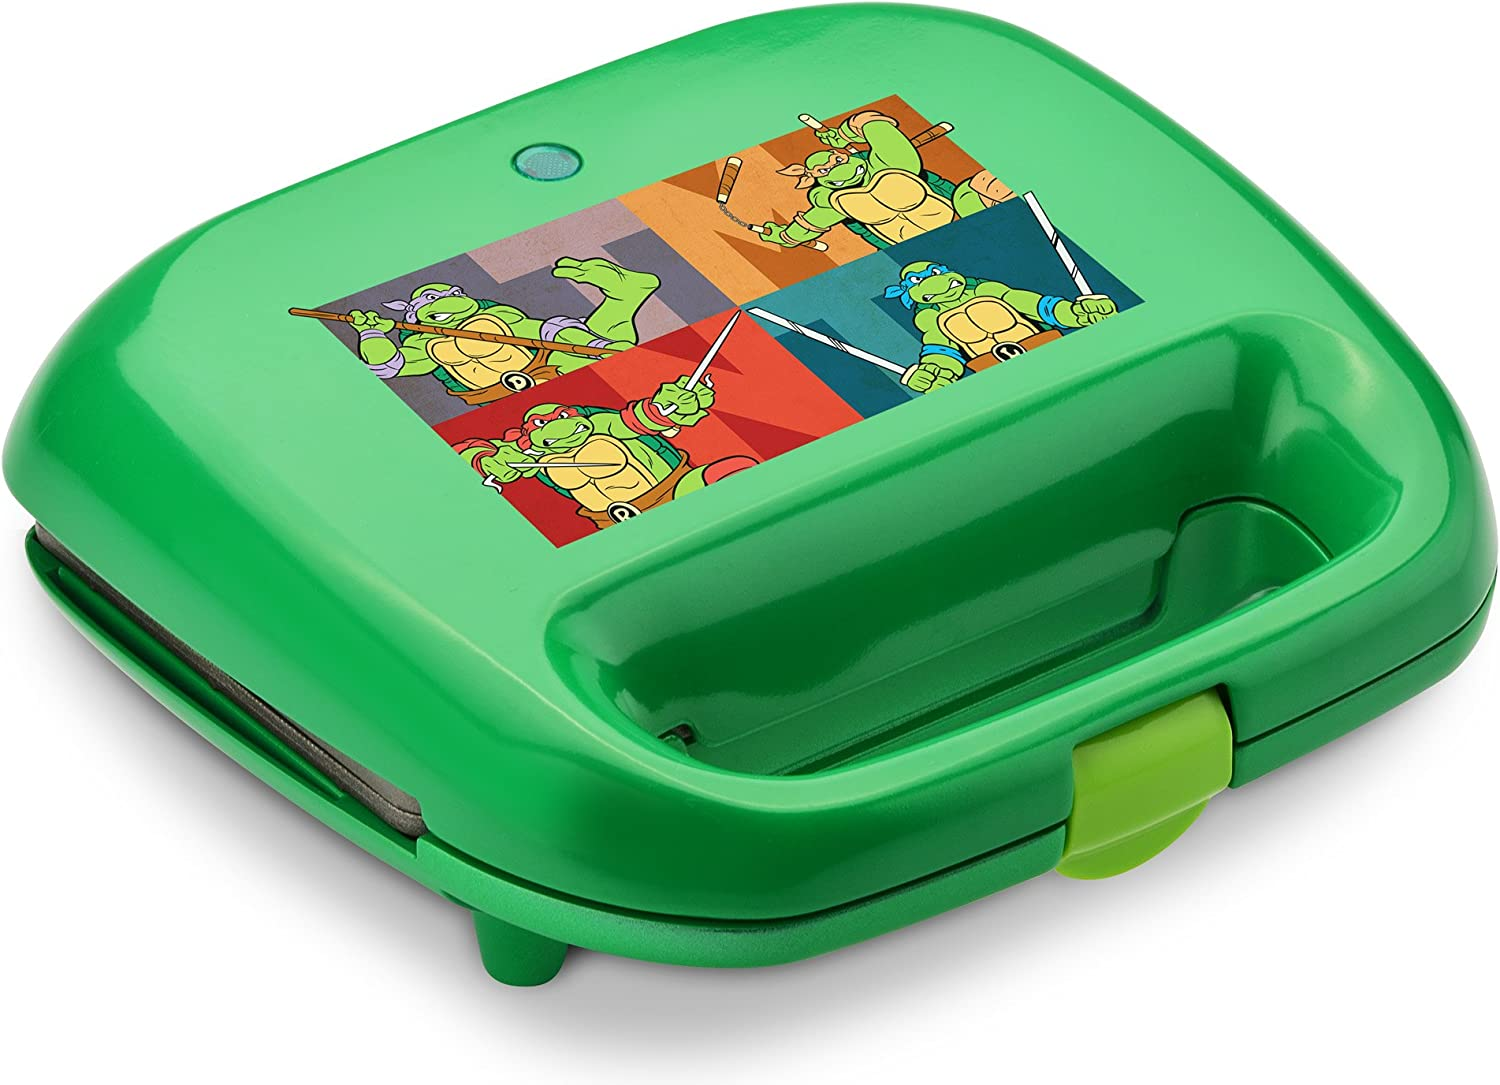 Nickelodeon NTWM-2 Teenage Mutant Ninja Turtles 2-Slice Waffle Maker, Green